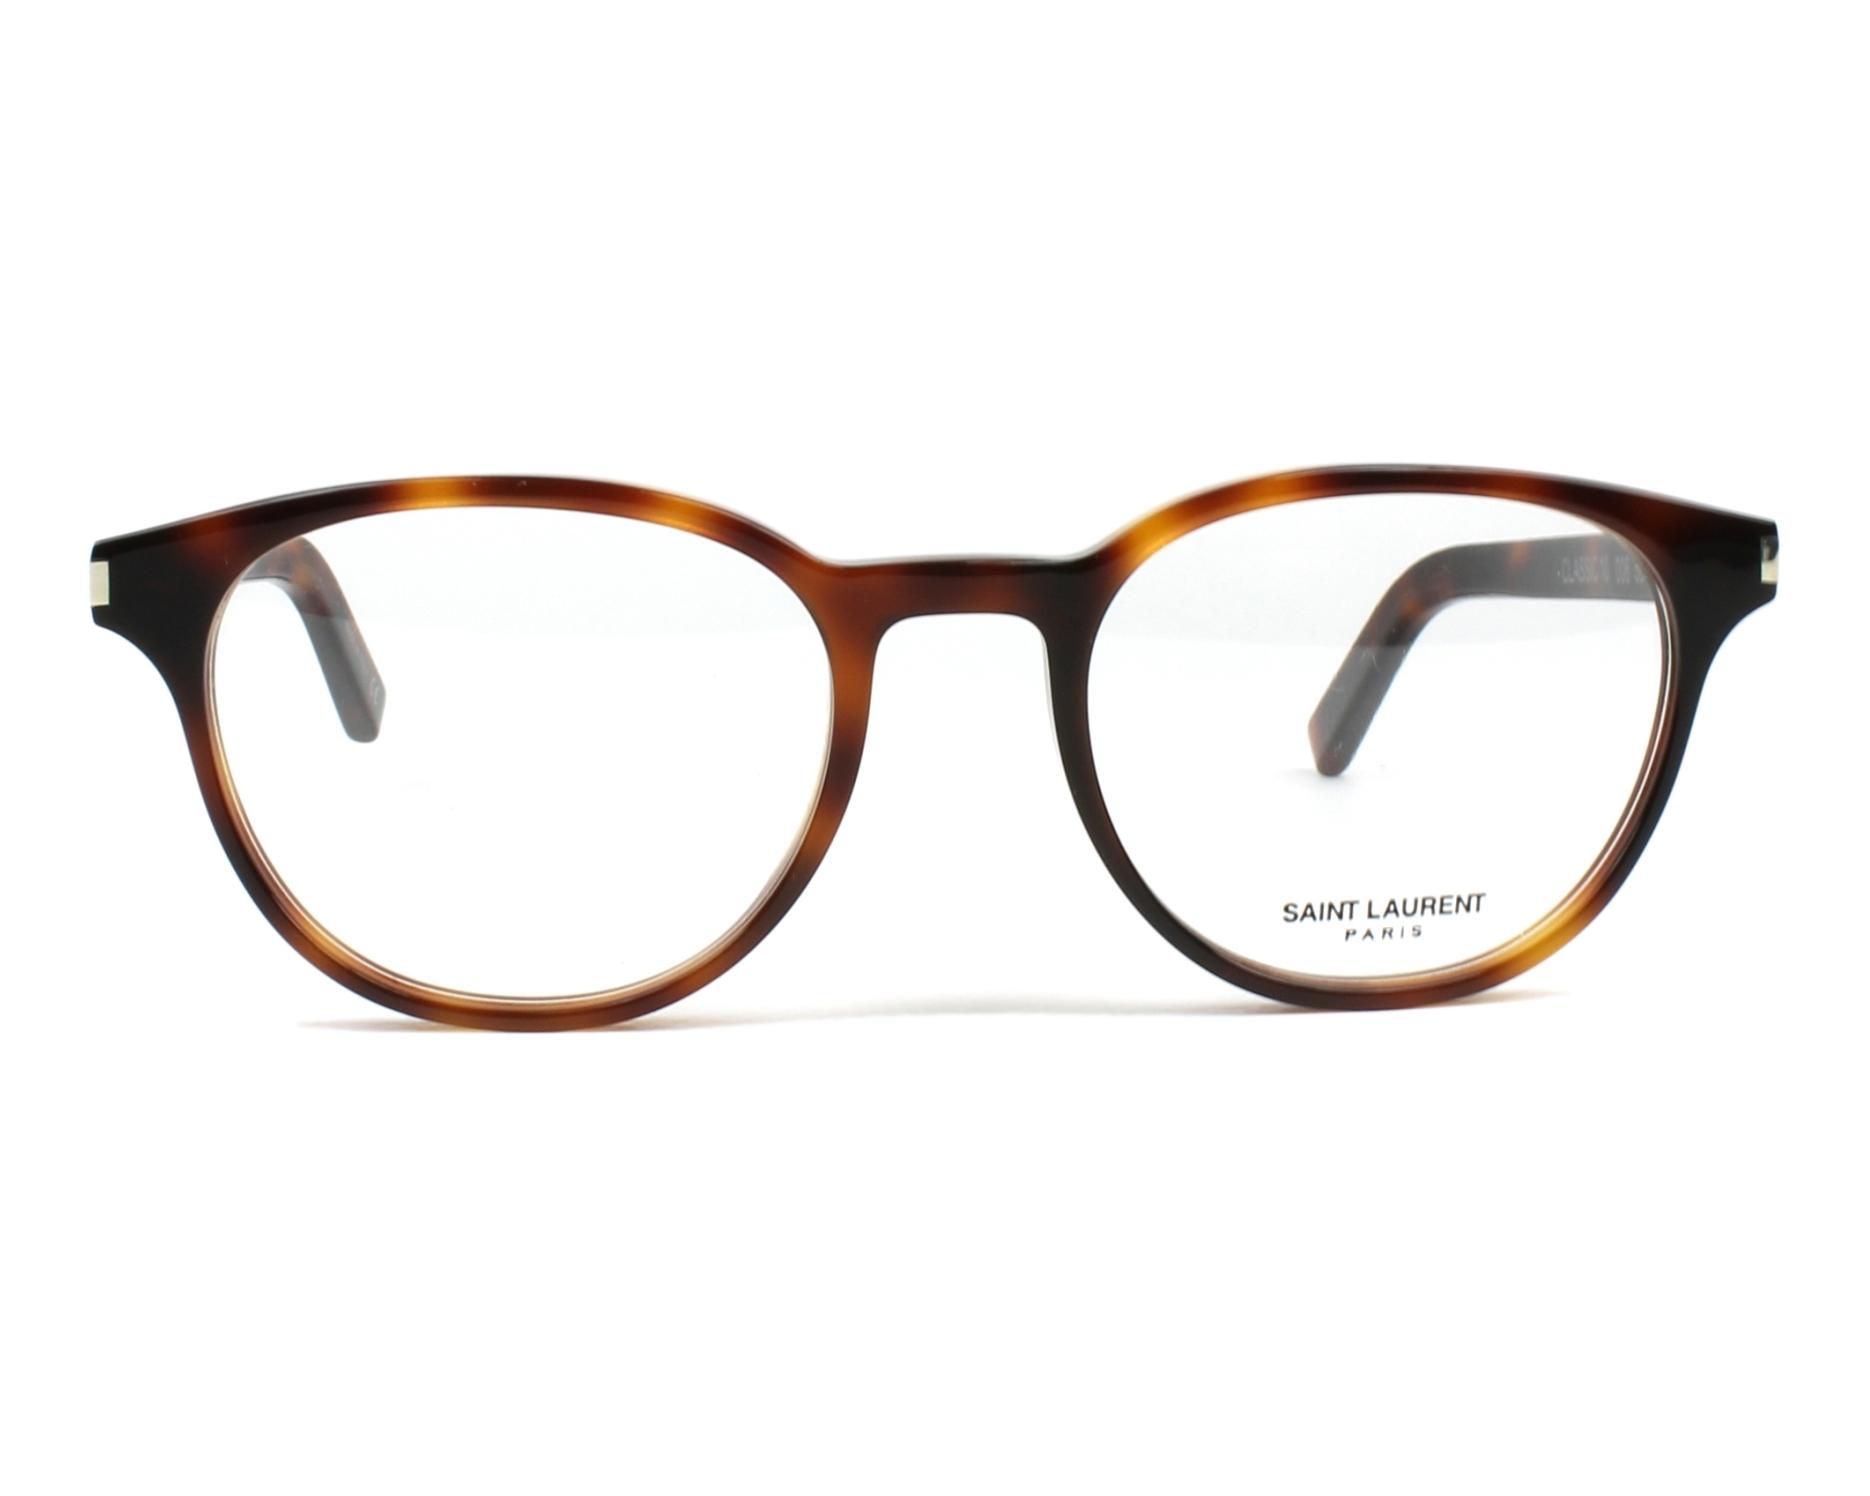 Saint Laurent Classic 10 006 50-19 in havana-havana